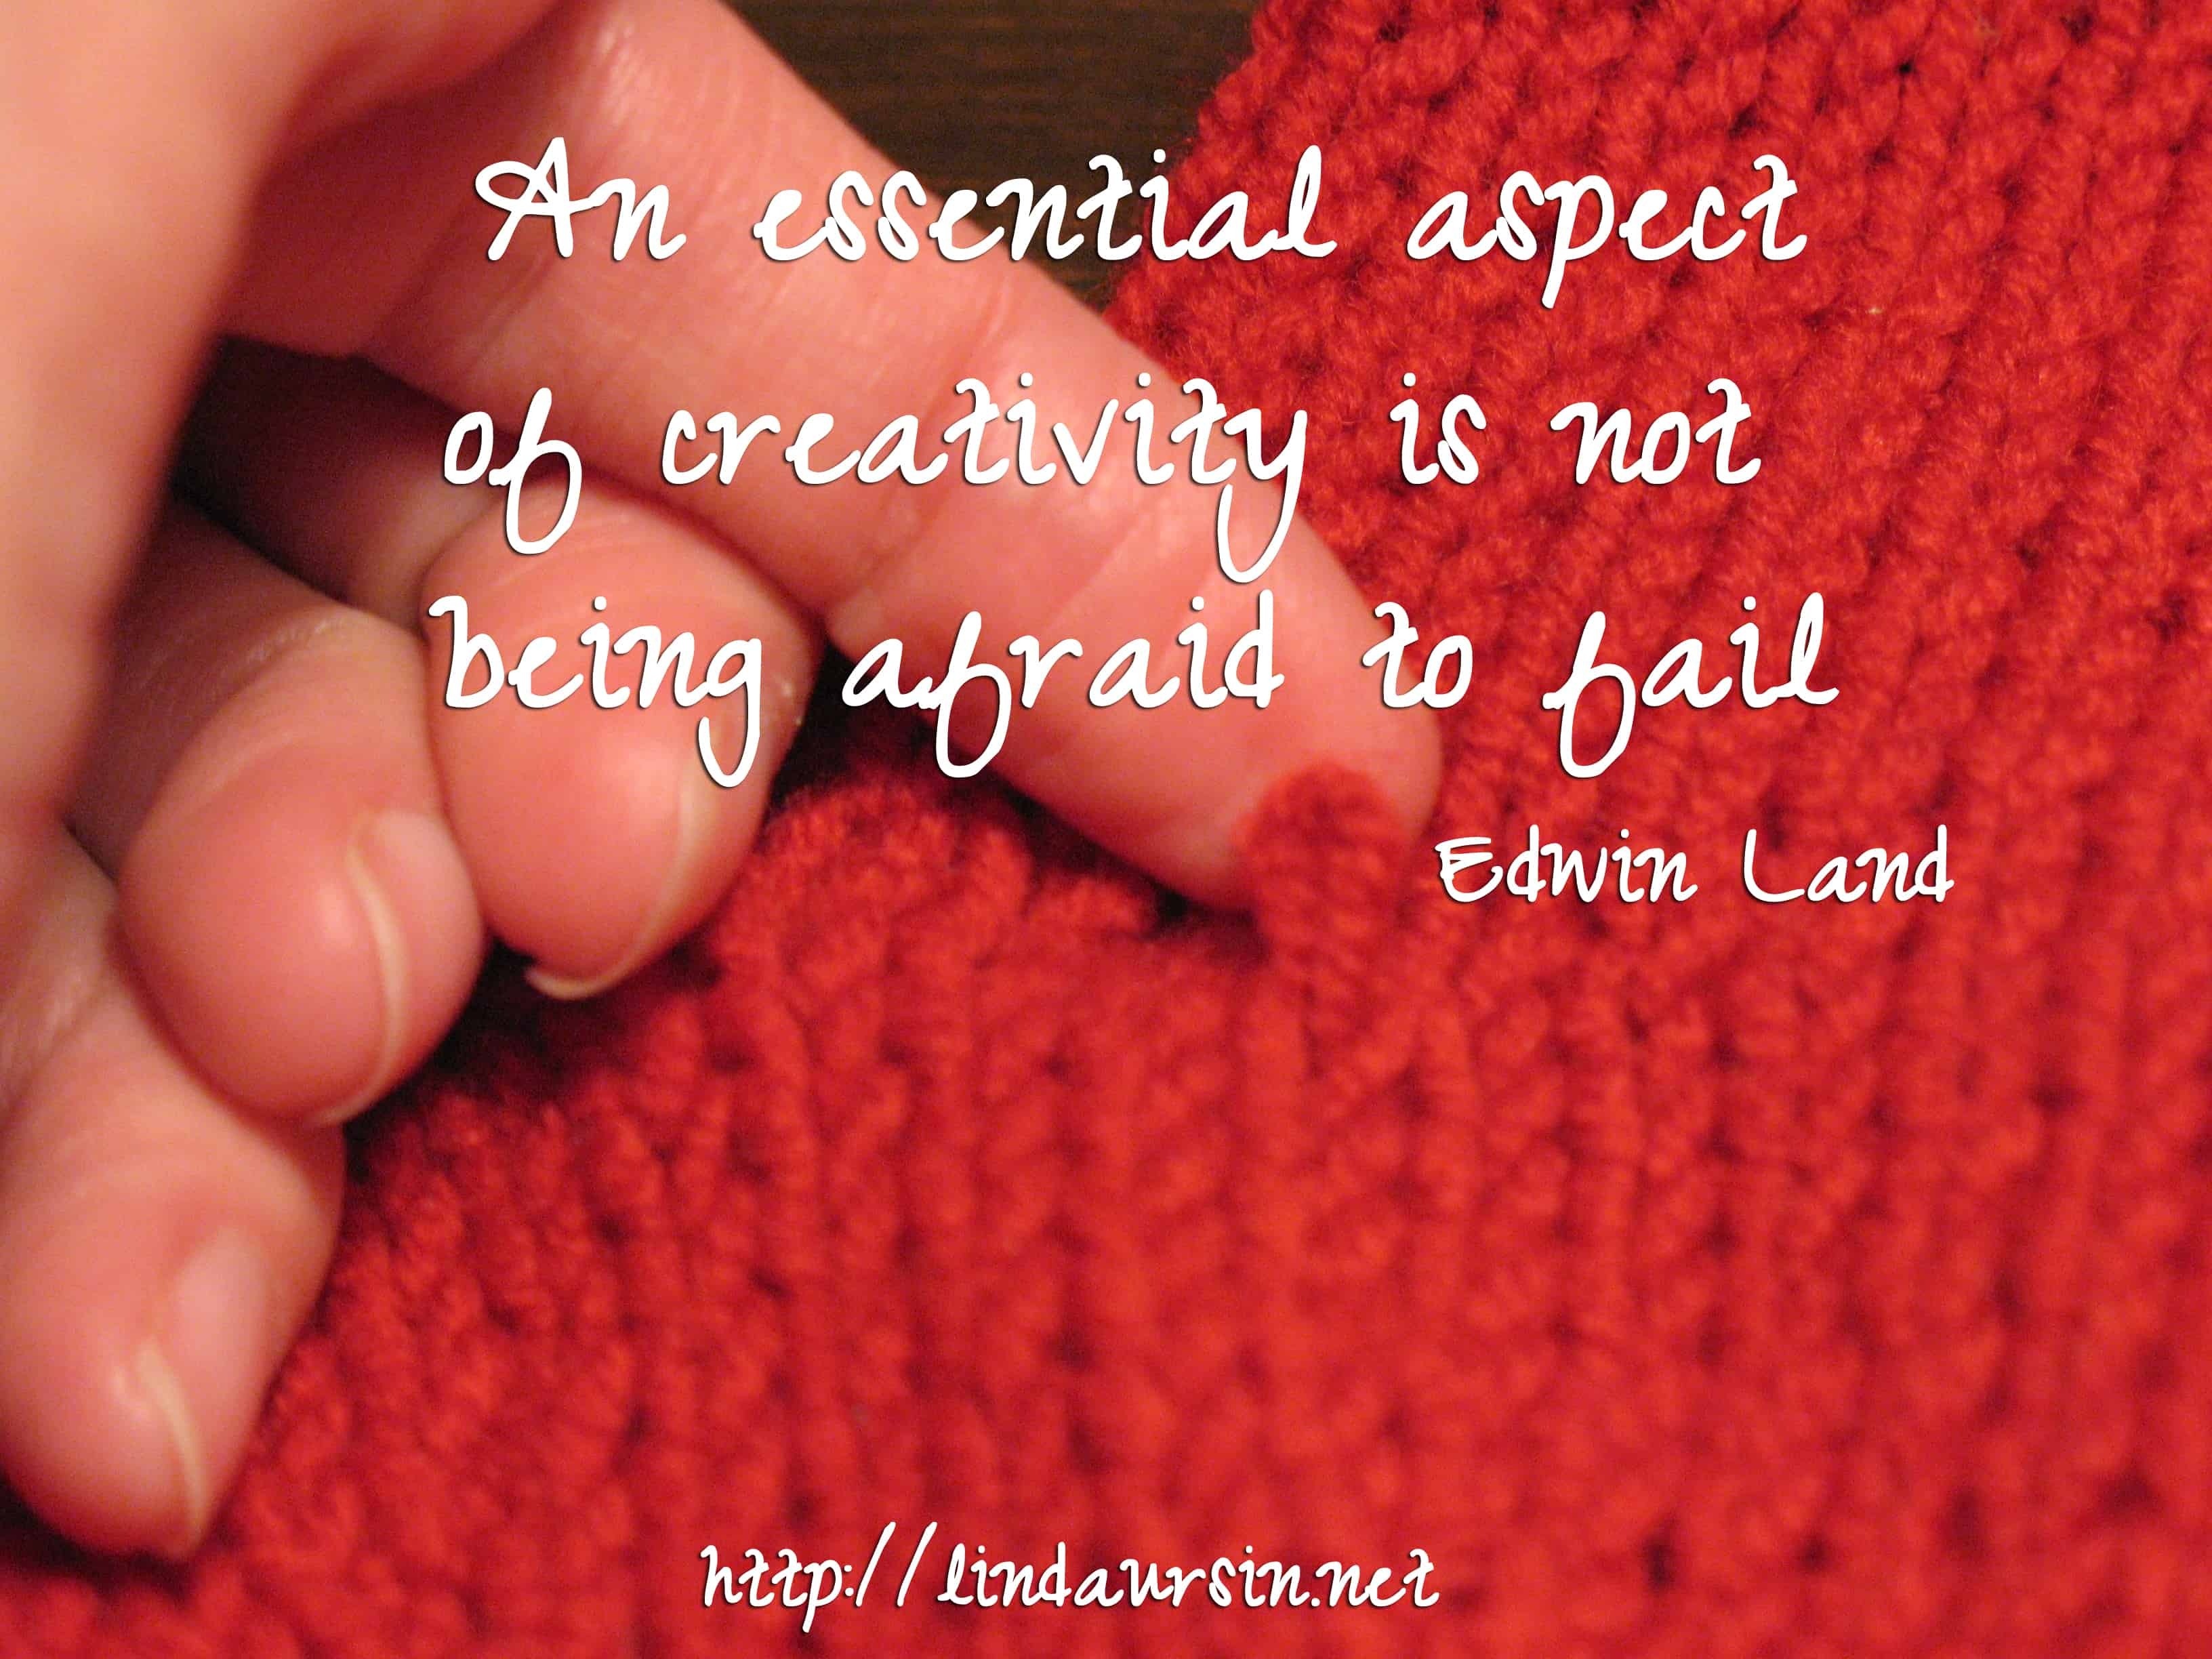 An essential aspect of creativity is not being afraid to fail - Edwin Land